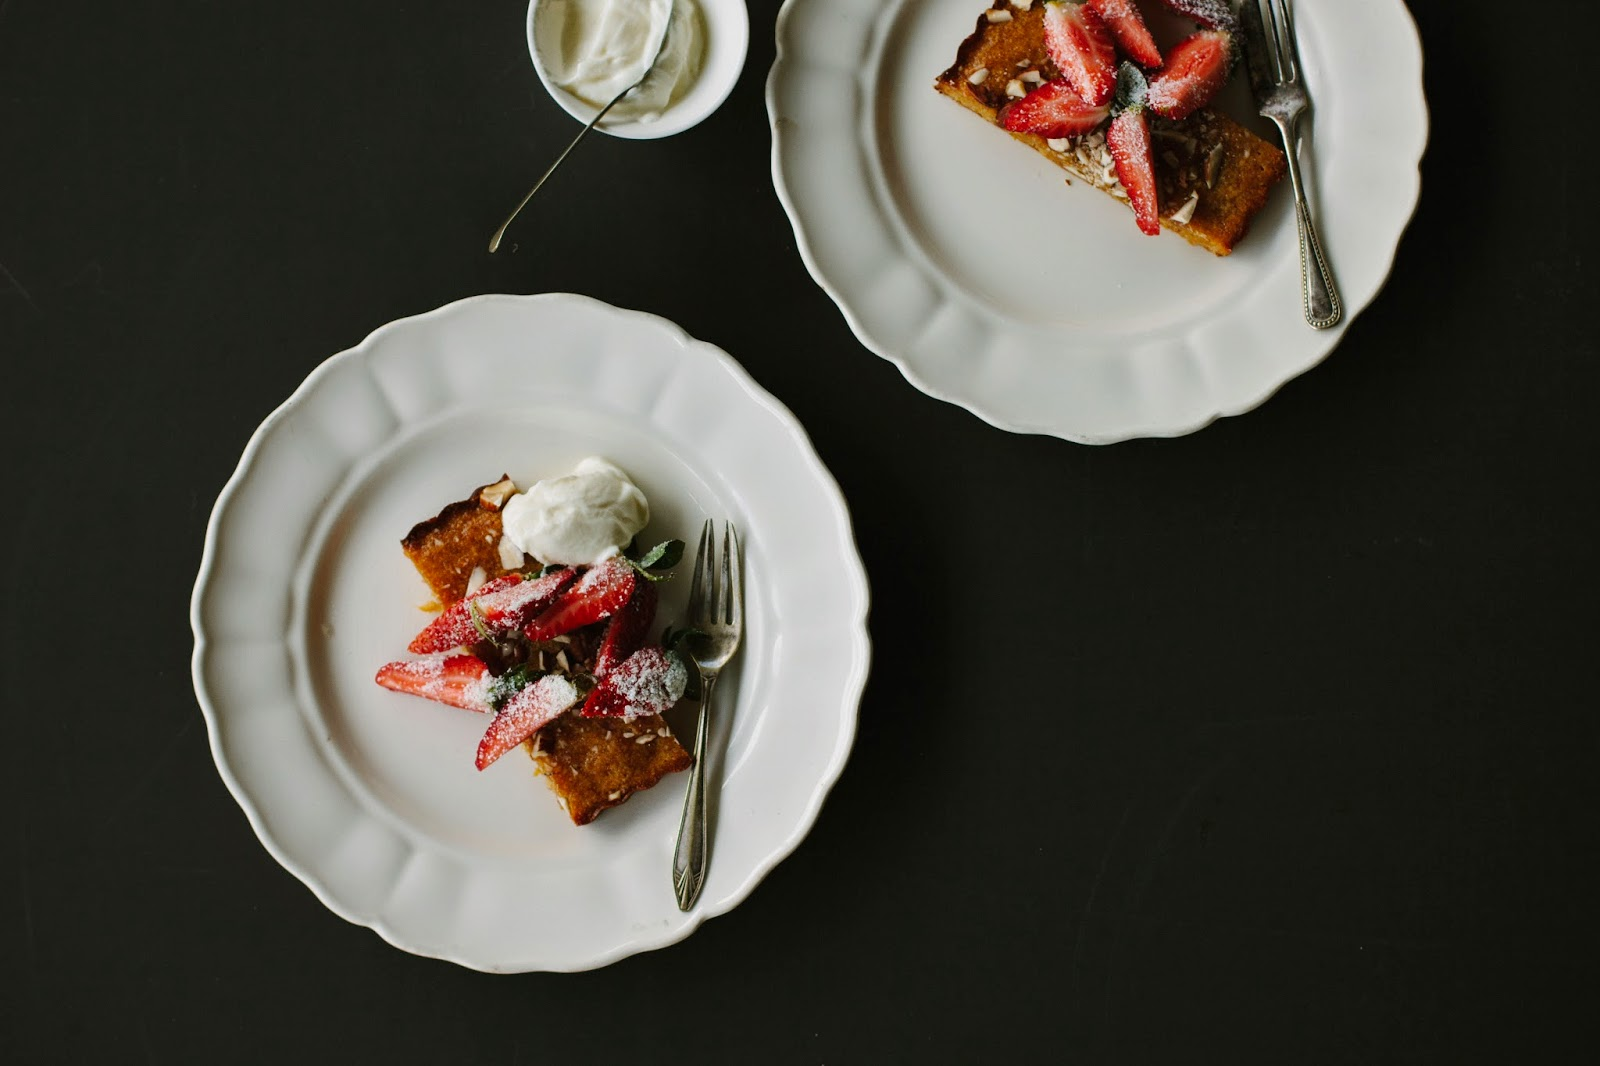 ... strawberries toasted almond cake with strawberries in rose water syrup